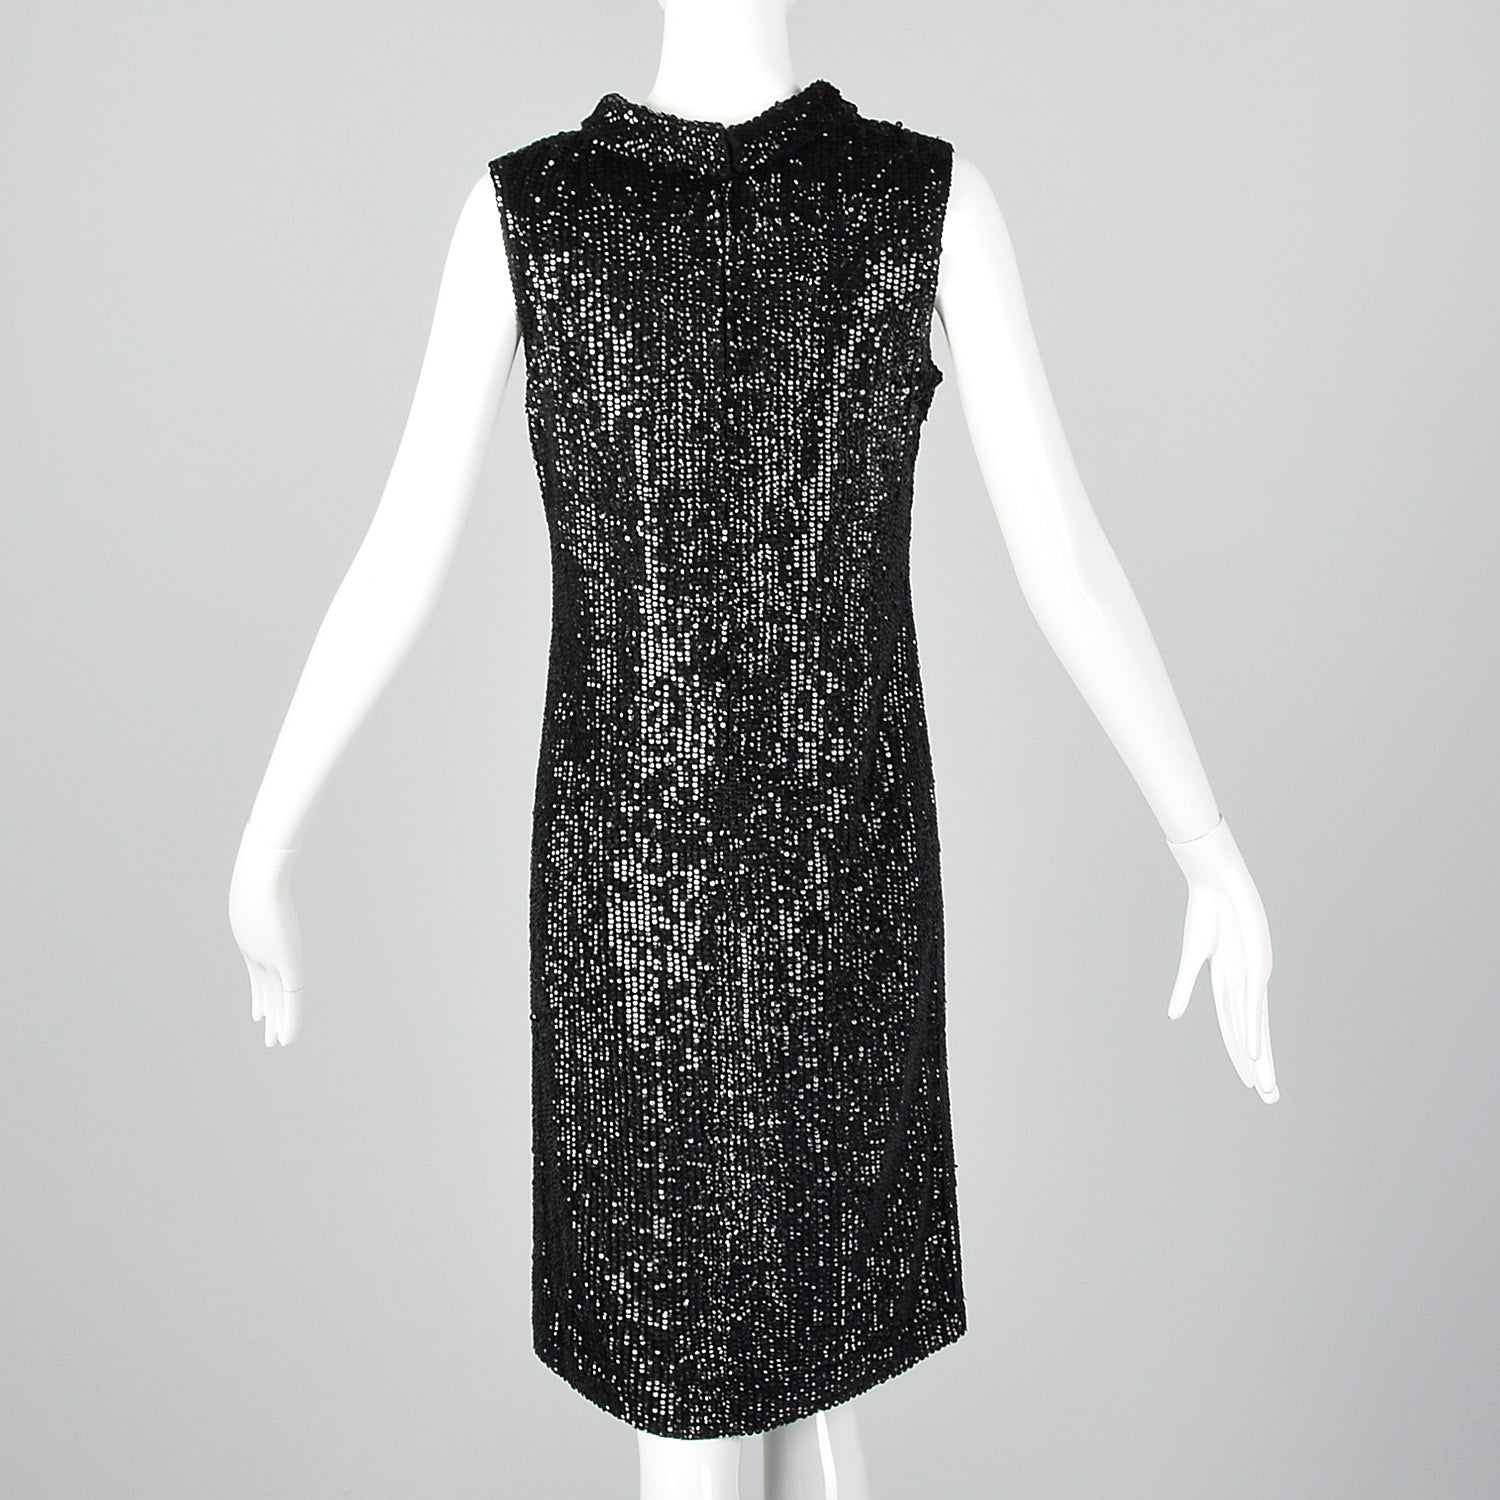 Small Valentina Ltd. 1960s Black Knit Sequin Dress